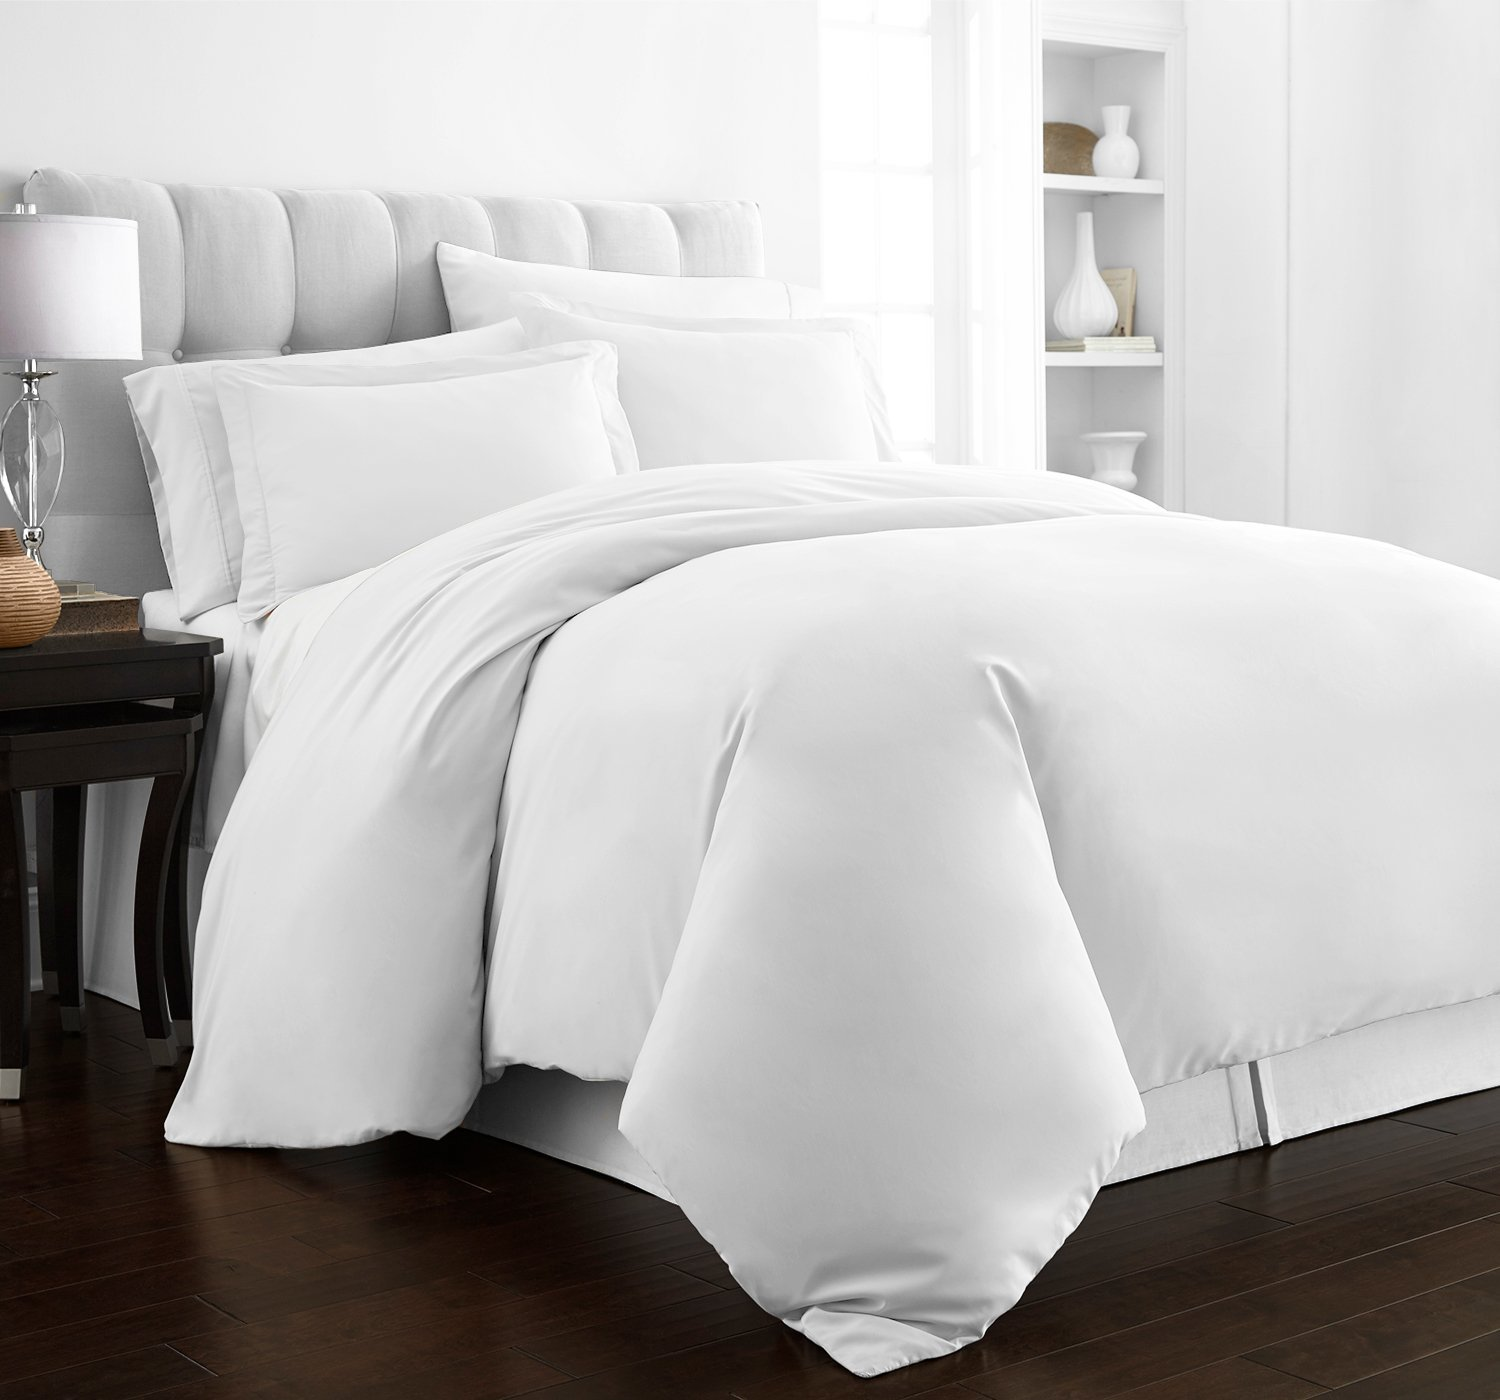 beckham hotel collection luxury soft brushed series microfiber duvet cover set king white